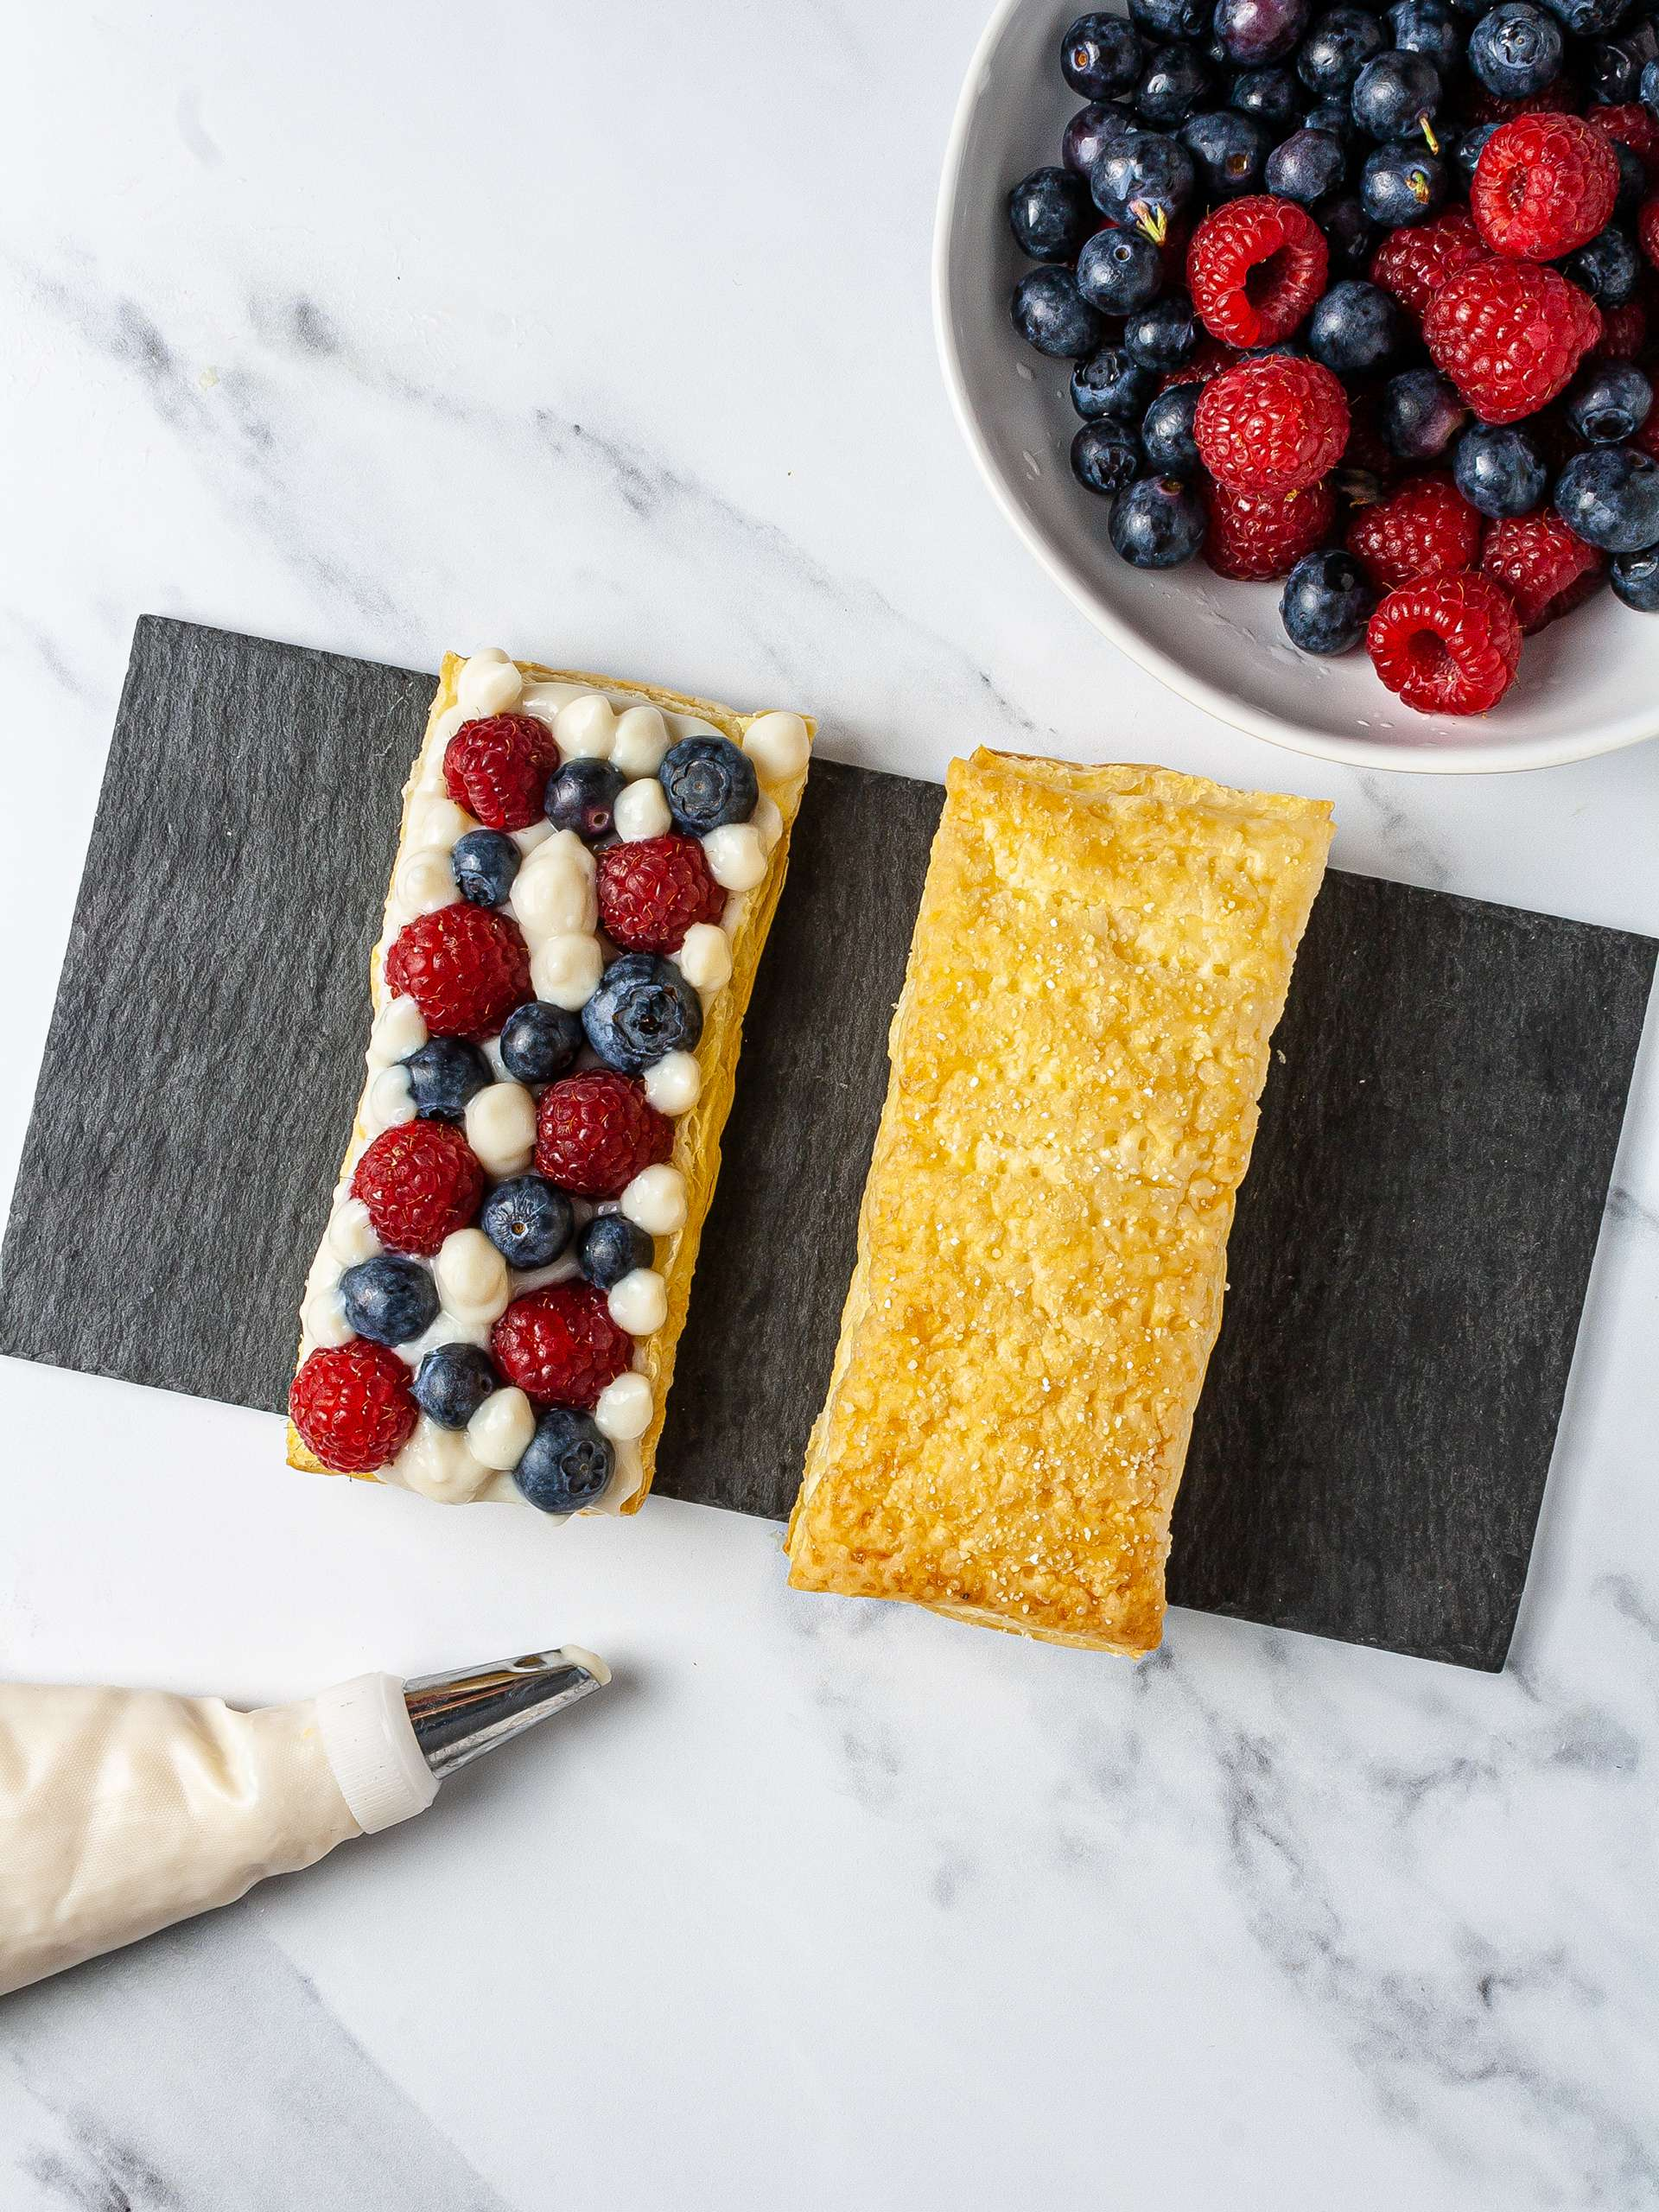 Puff pastry with almond cream, blueberries, and raspberries